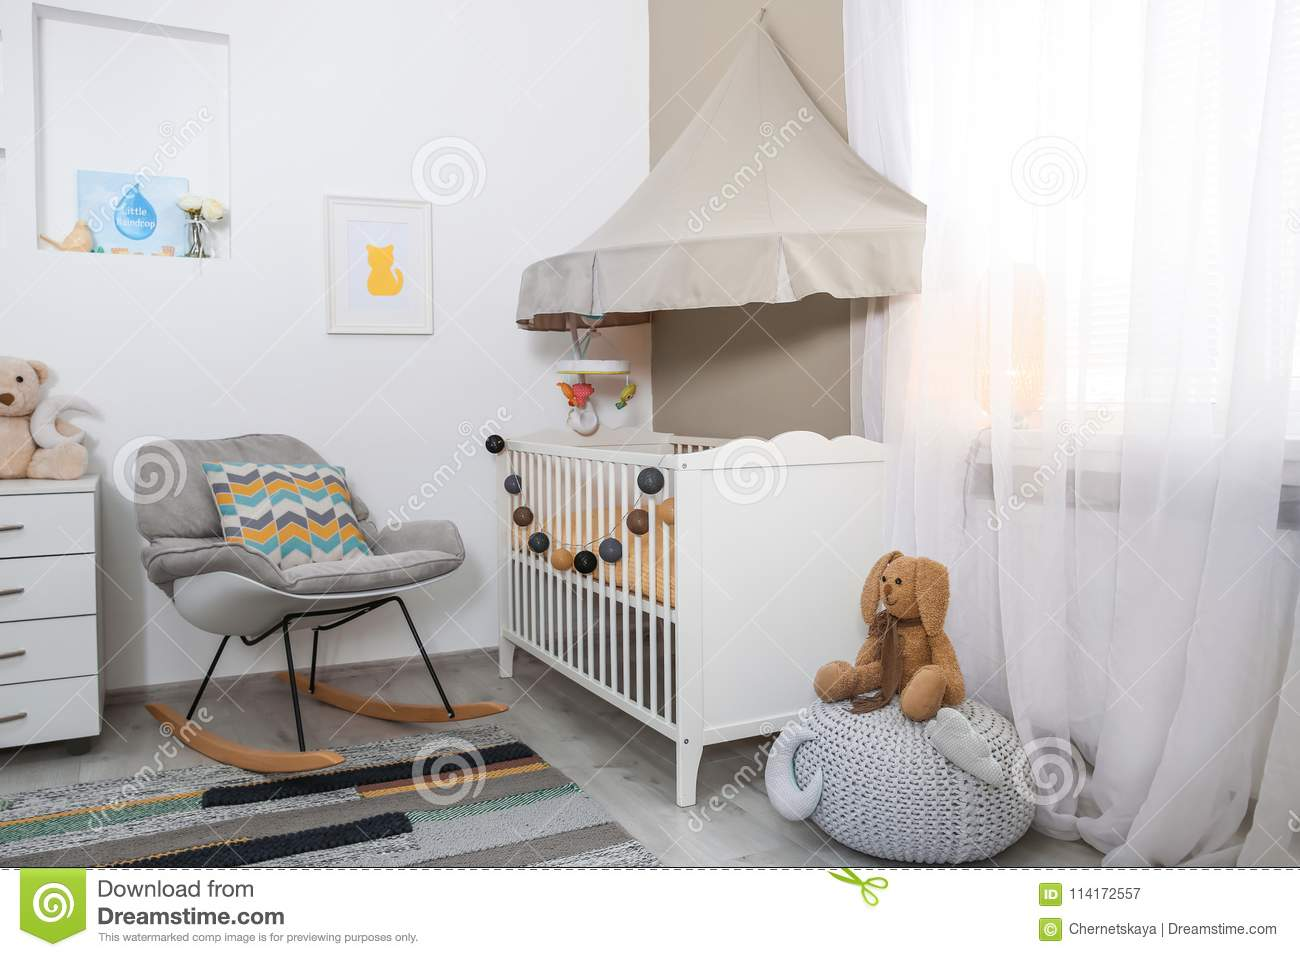 Cozy Baby Room Interior With Crib Stock Image Image Of Estate Decor 114172557